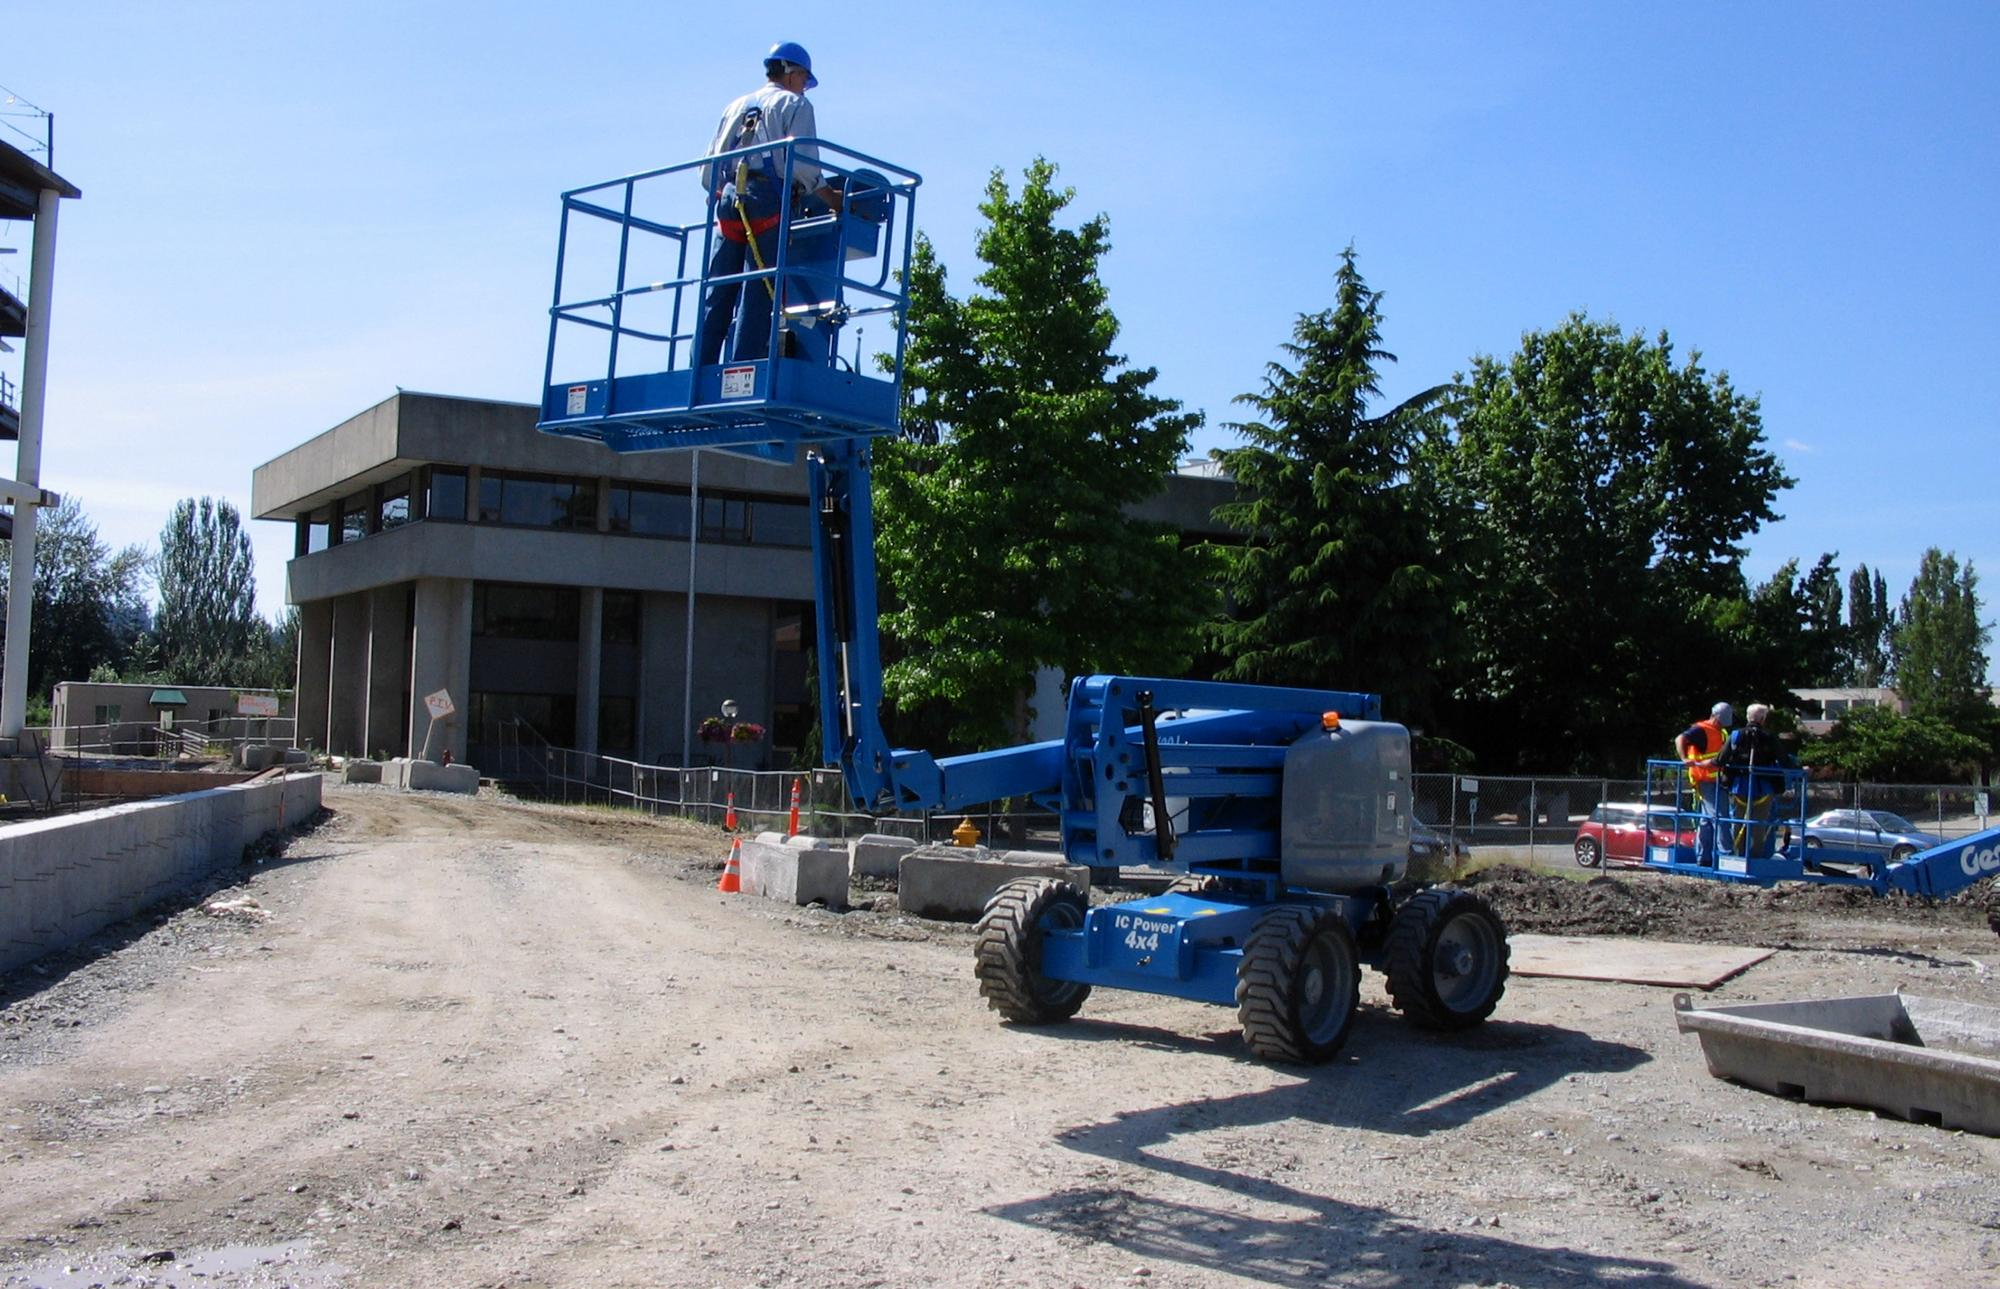 Genie® GENIE Z-51 / 30JRT (JIB & Rough Terrain) Articulated Boom Lift